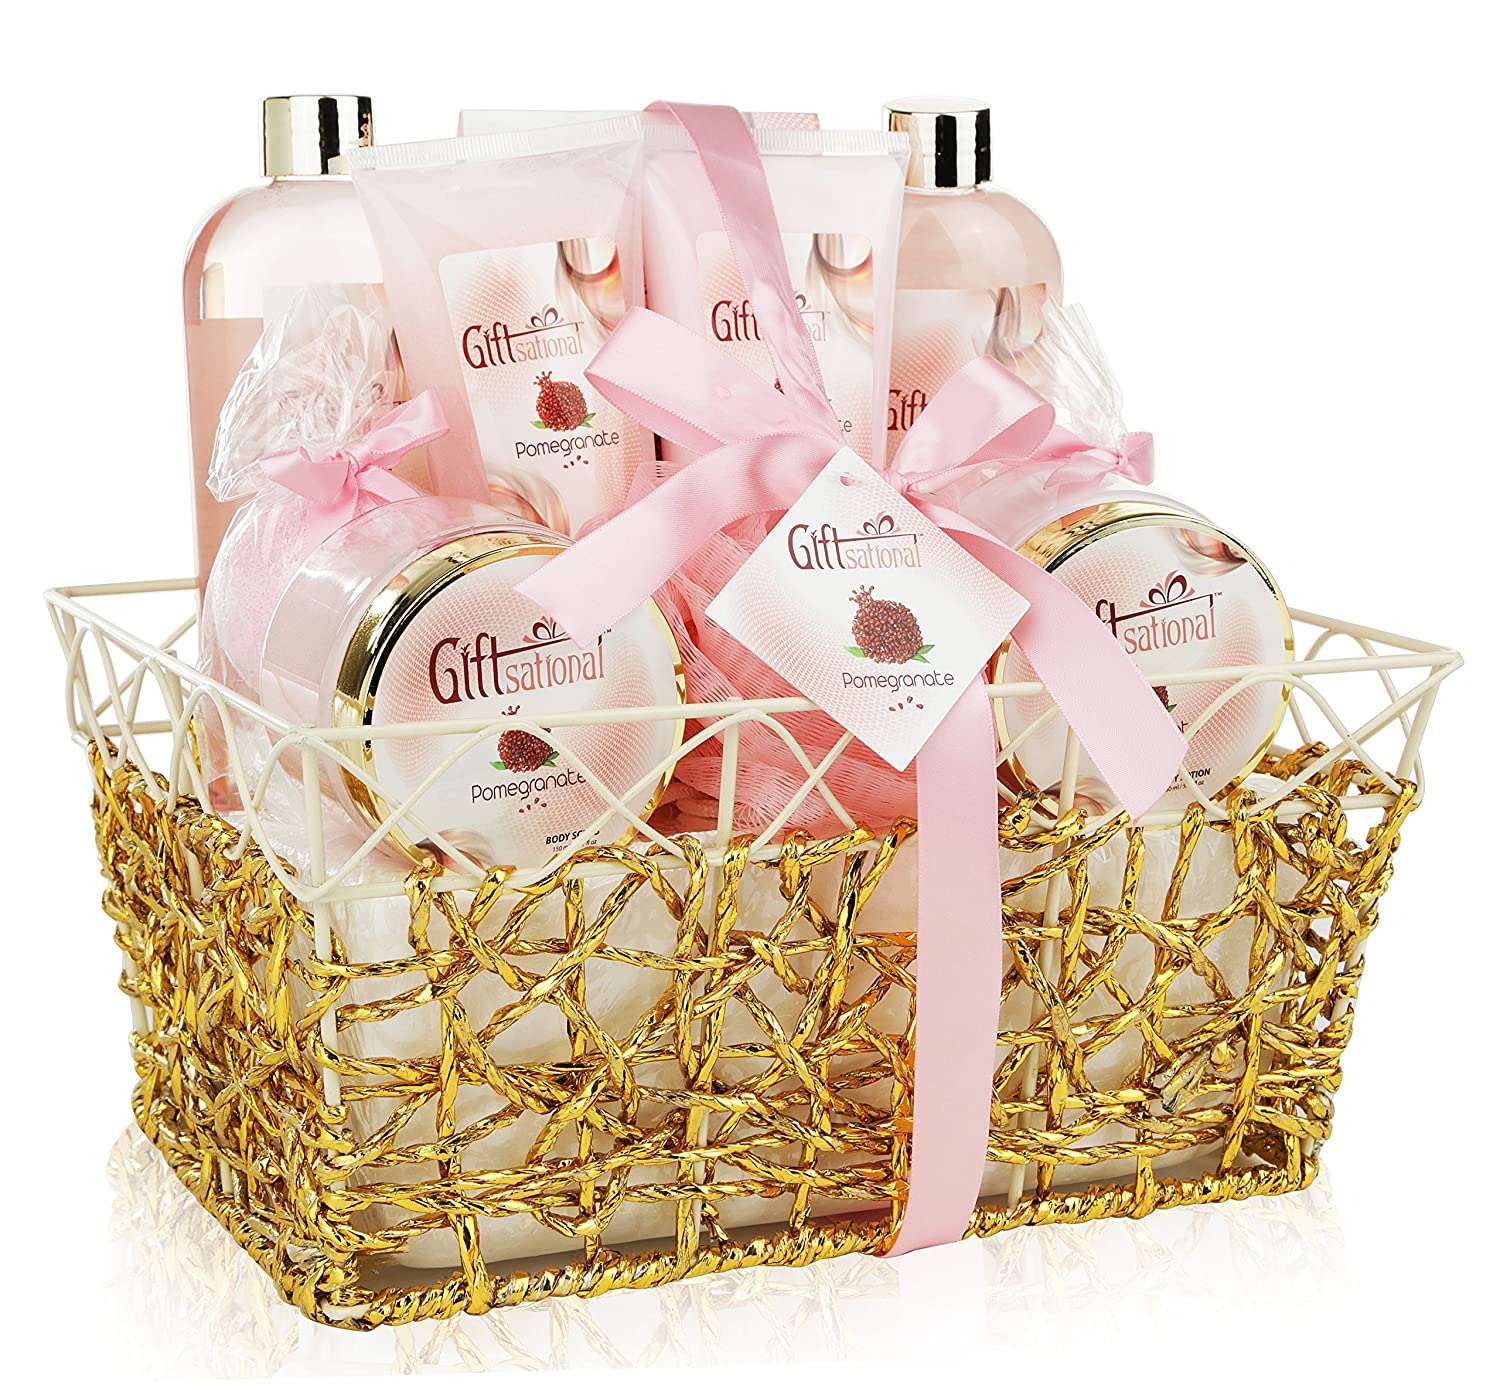 Spa Gift Basket - Refreshing Pomegranate Fragrance in Gold Gift Basket, Includes Shower Gel, Bubble Bath, Bath Bombs, Lotion and More! Great Wedding, Birthday, or Anniversary Gift Set for Women Giftsational